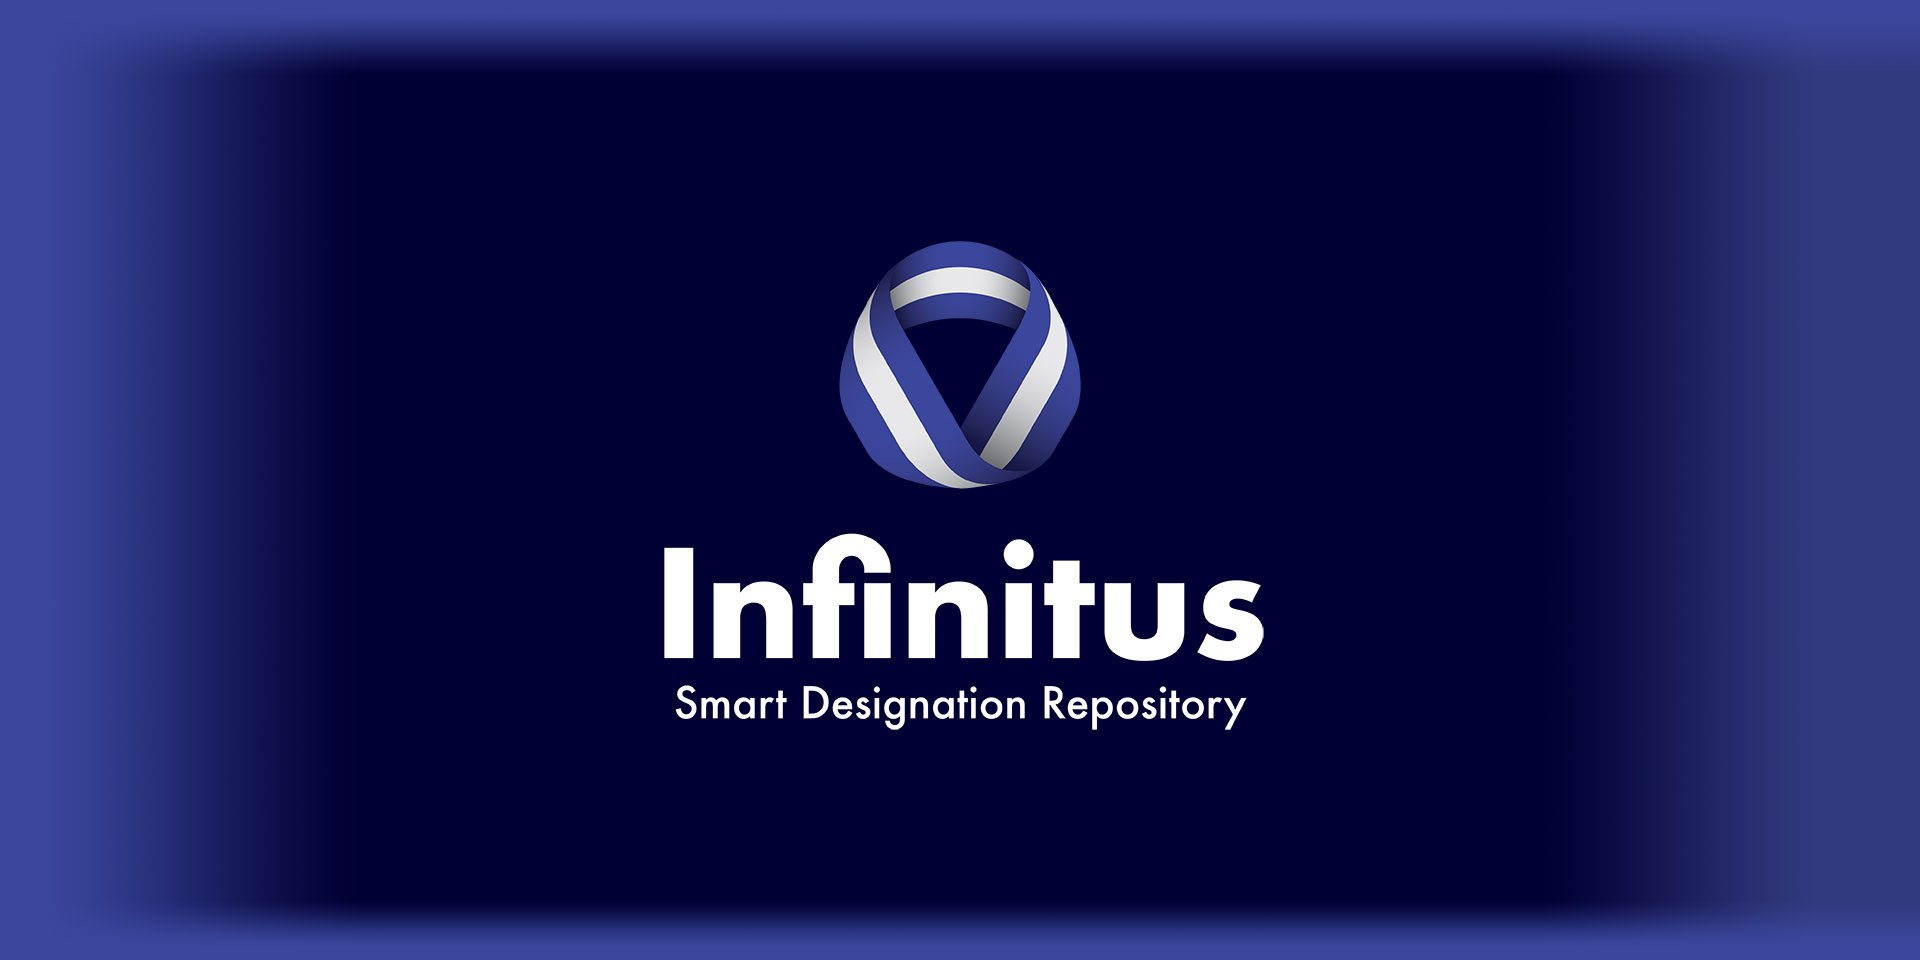 Infinitus Has Just Created the Solution to Cryptocurrency's Biggest Problem